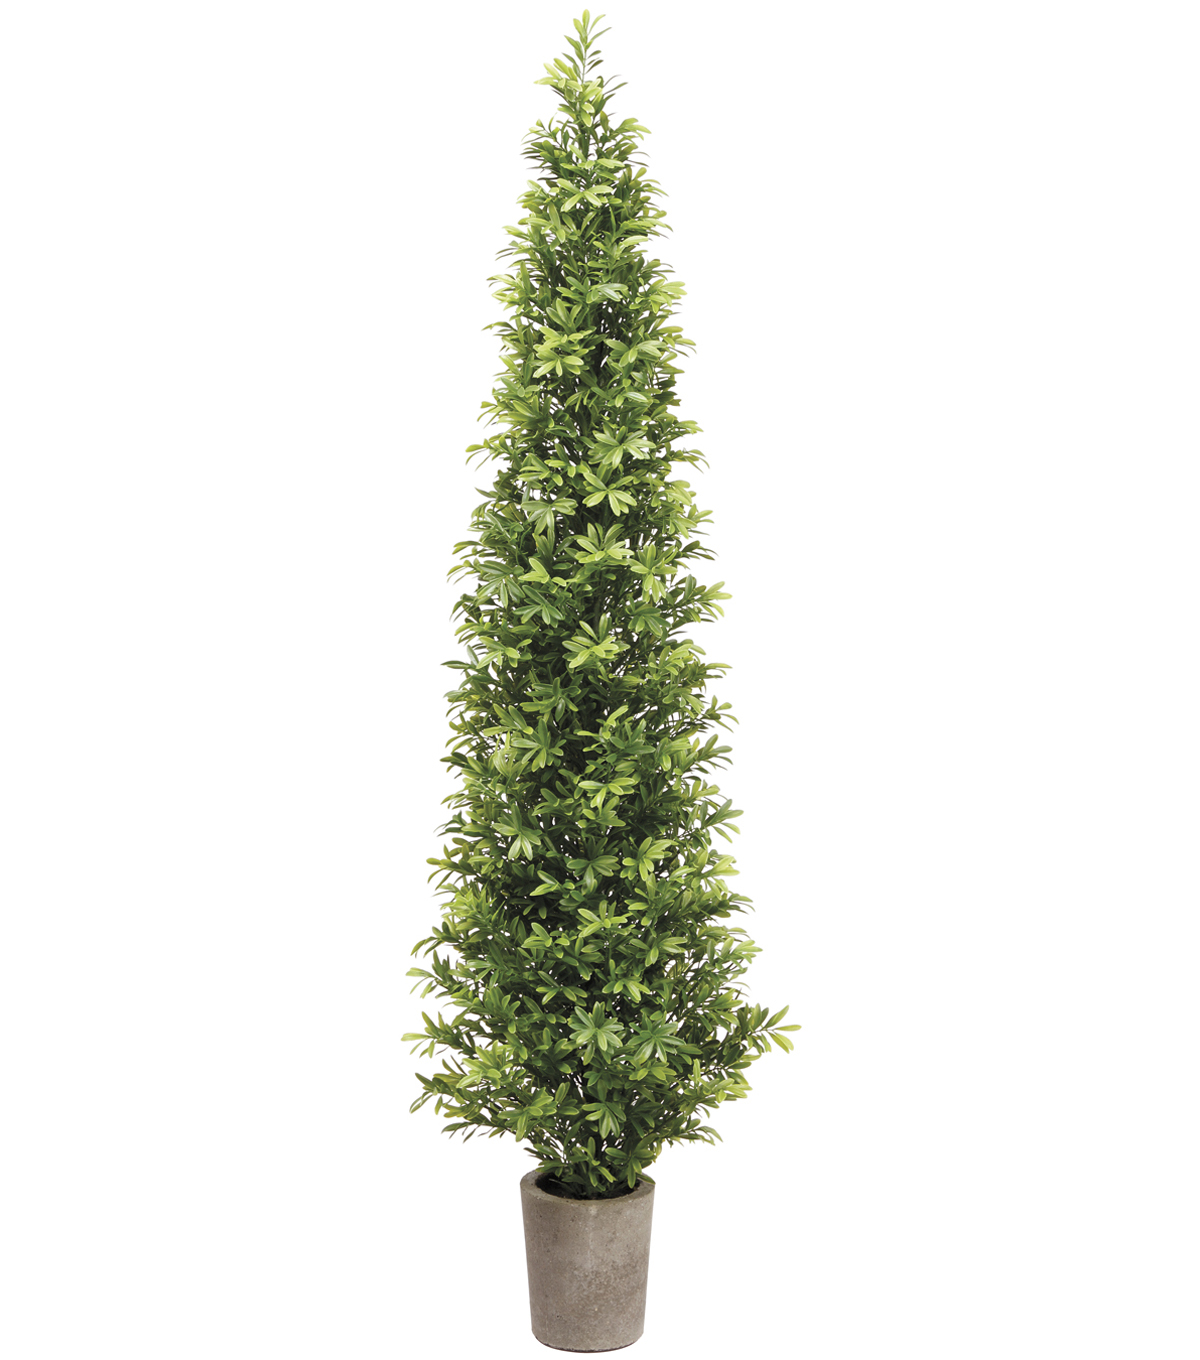 Podocarpus Topiary Tree in Cement Pot 35\u0027\u0027